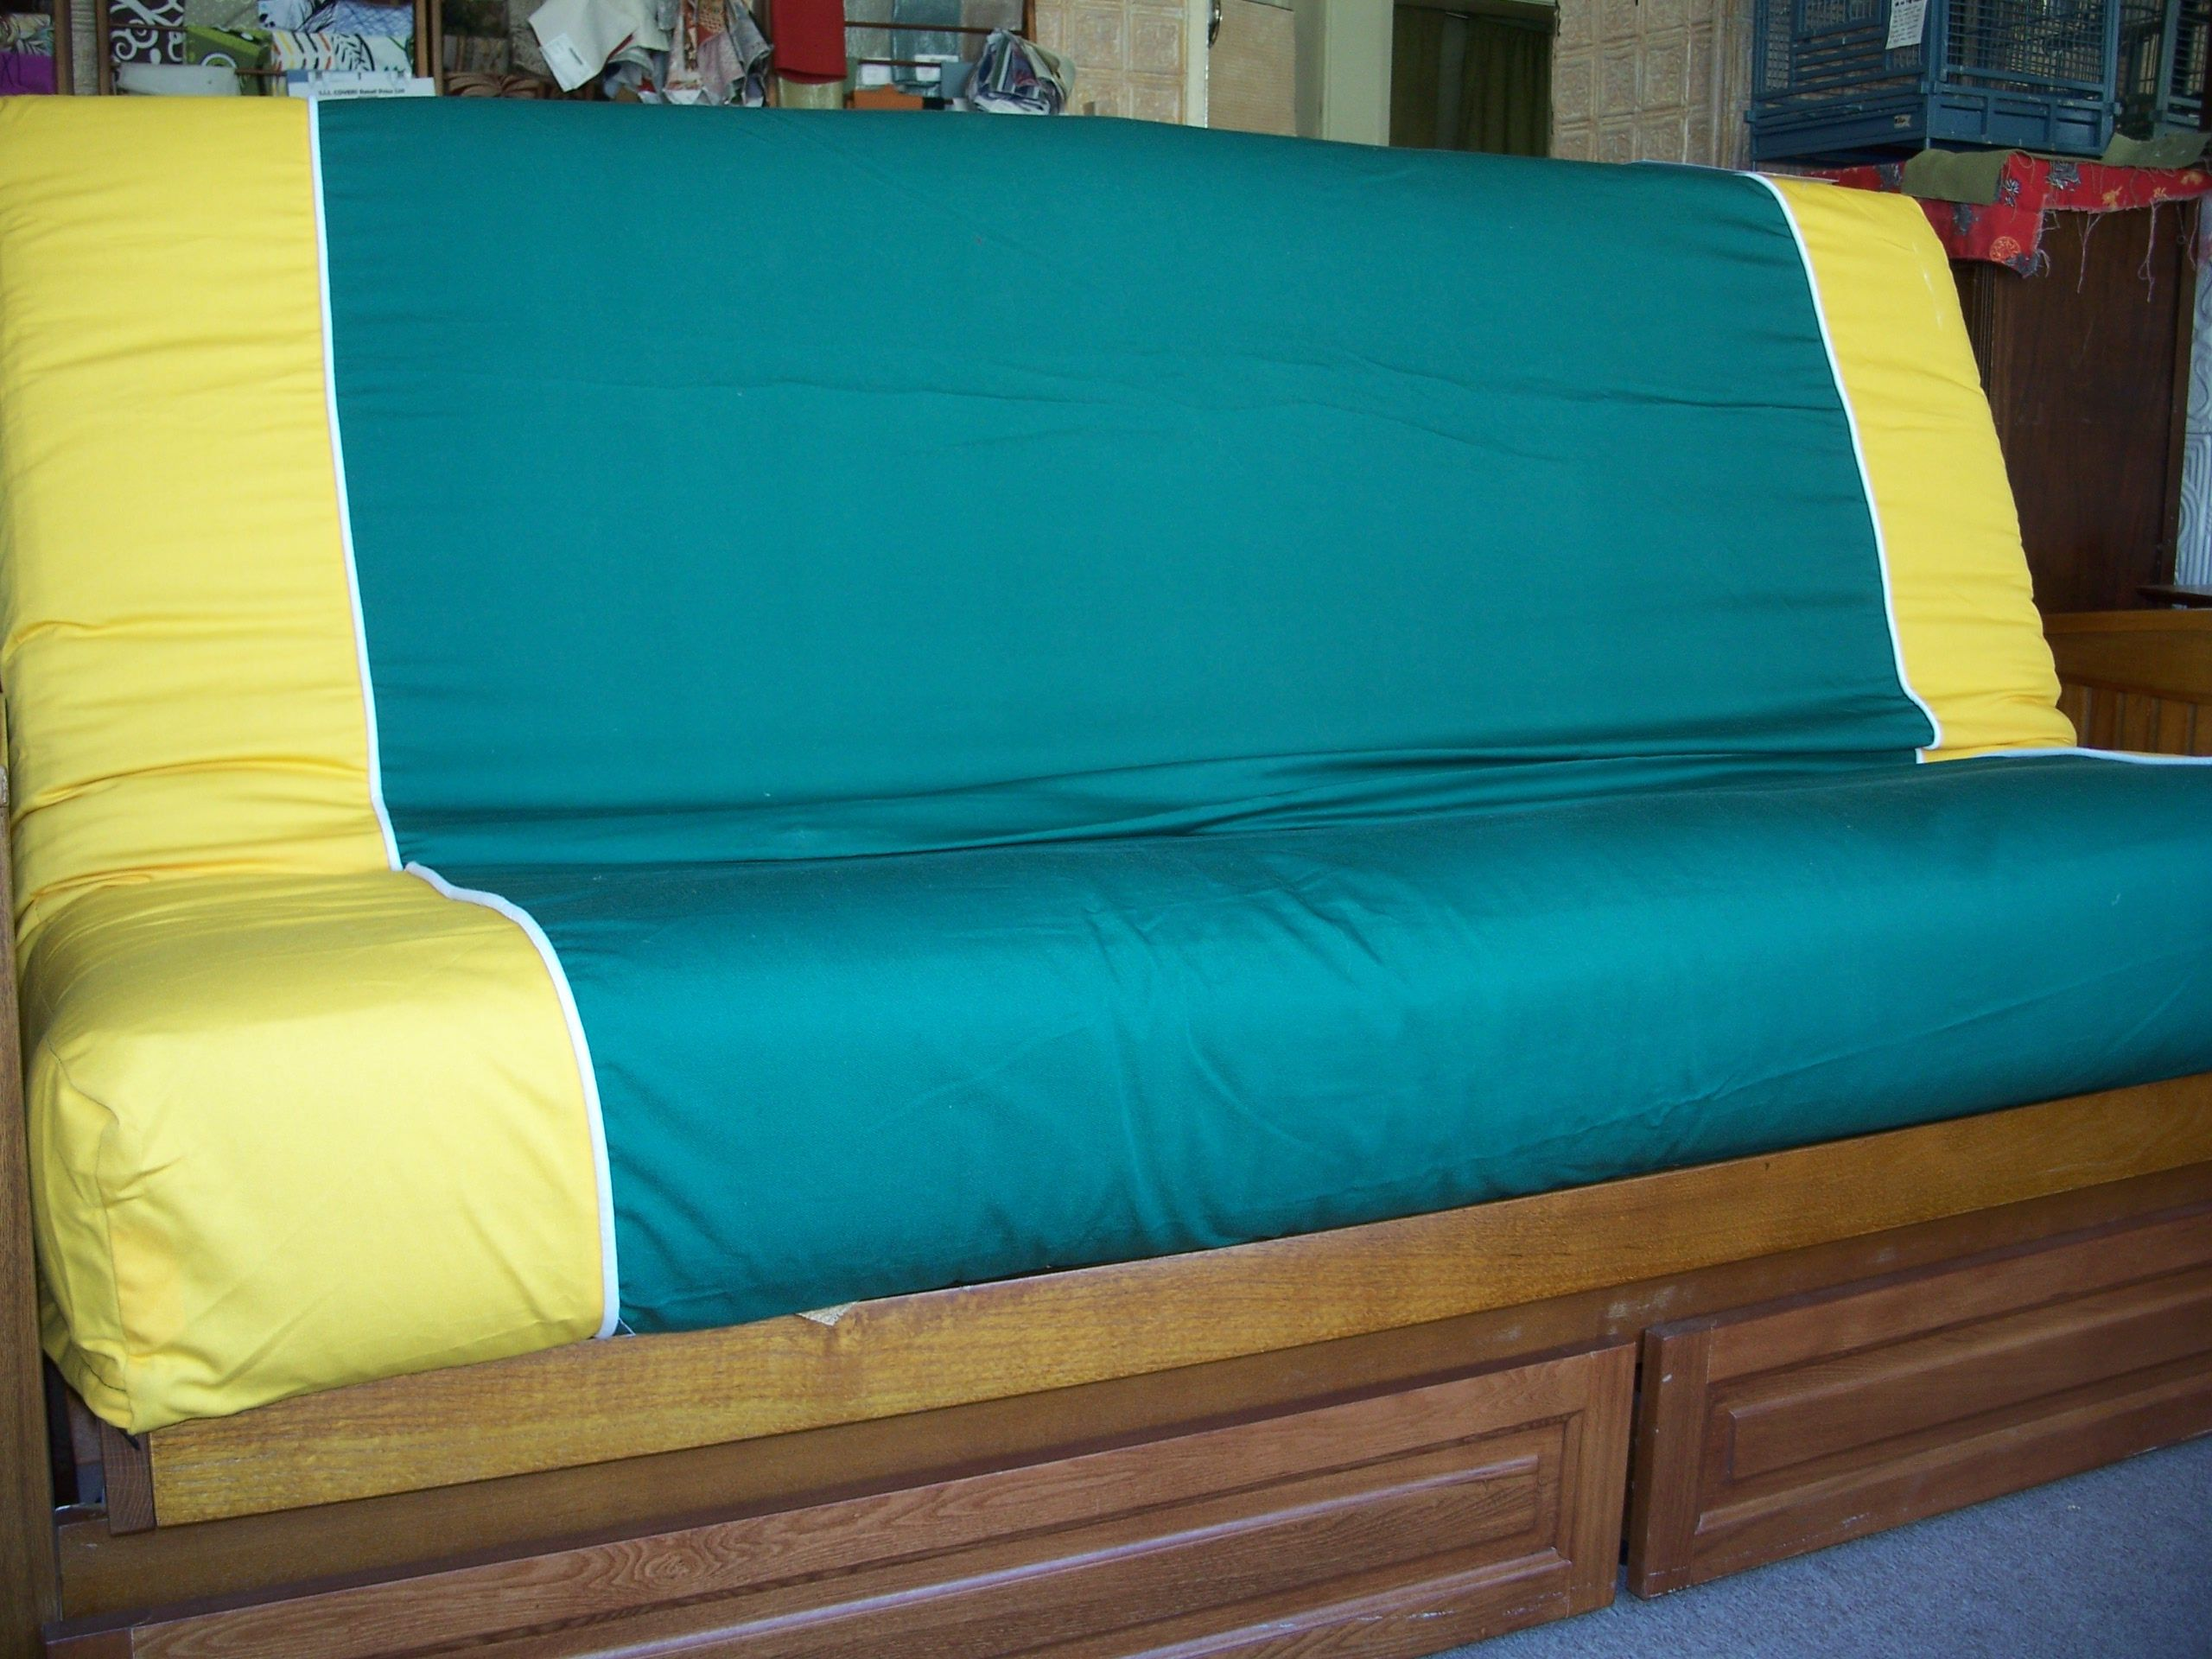 Custom Made Futon Covers Can Be Created To Make Official Un Not At